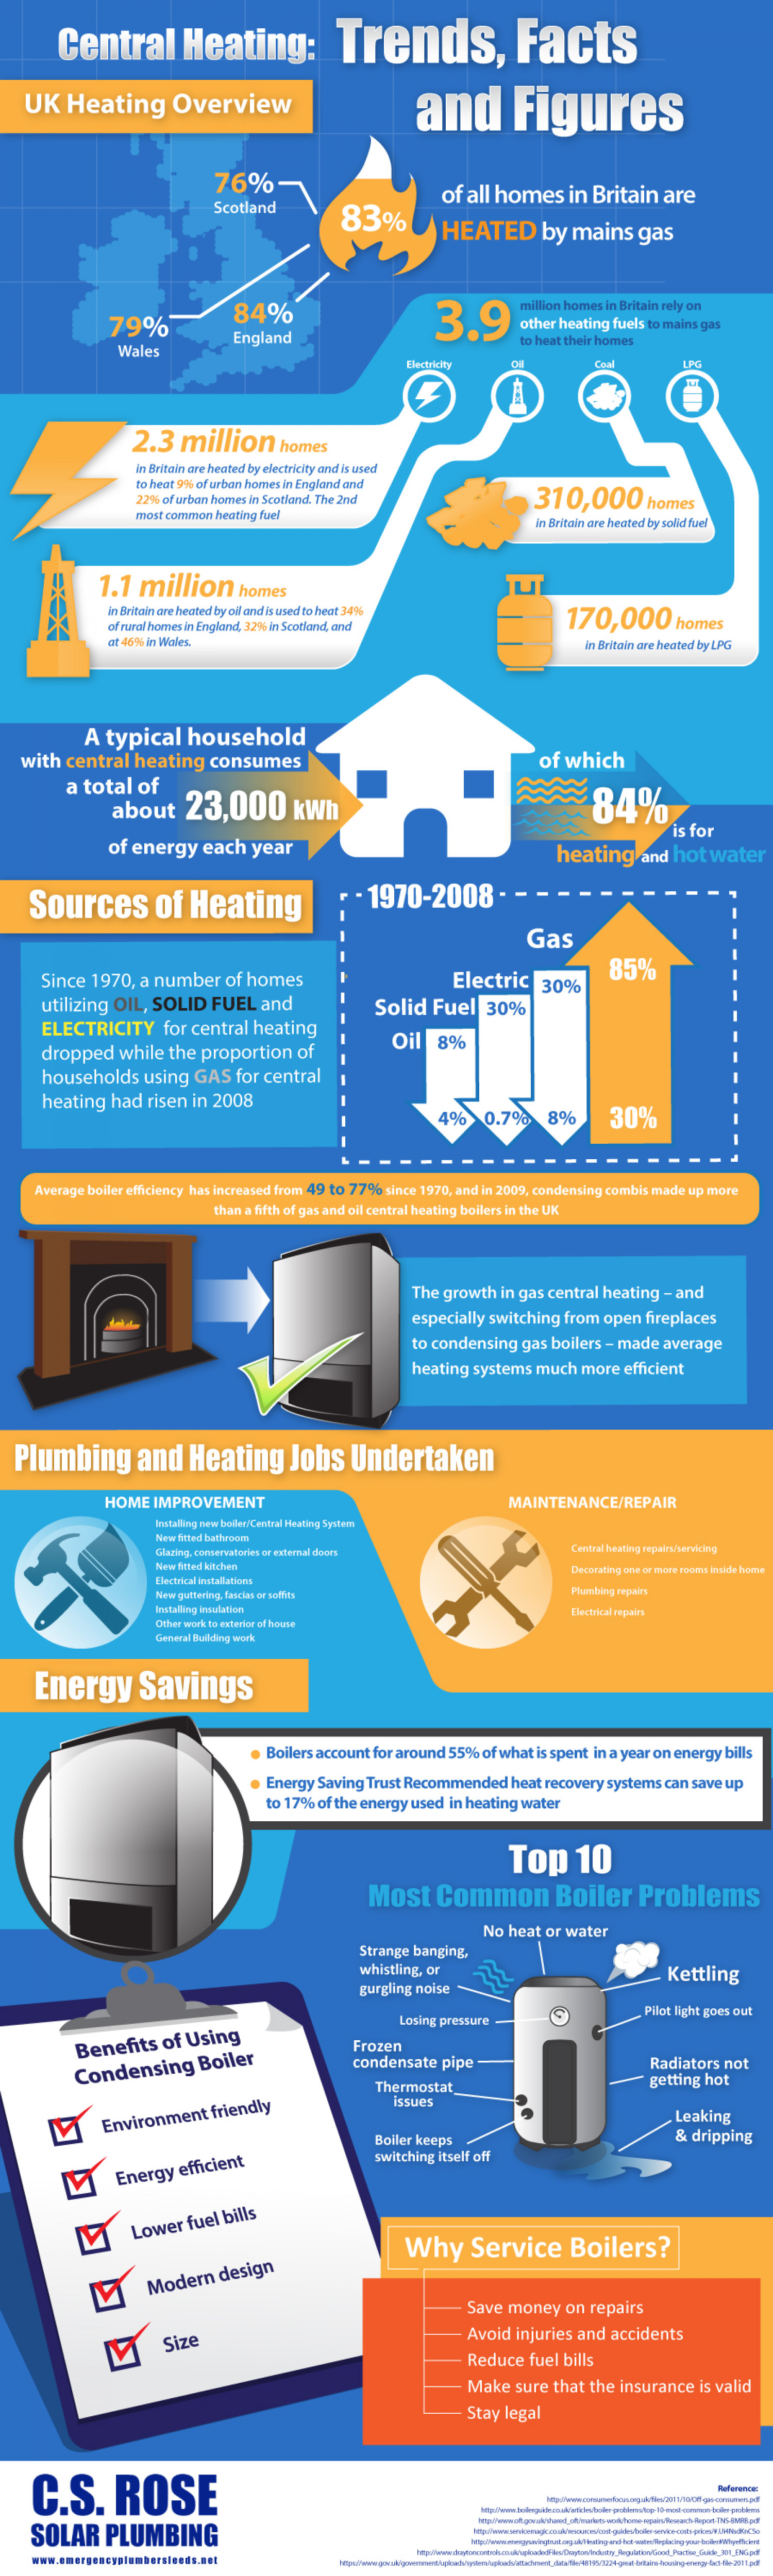 Central Heating: Trends, Facts and Figures Infographic